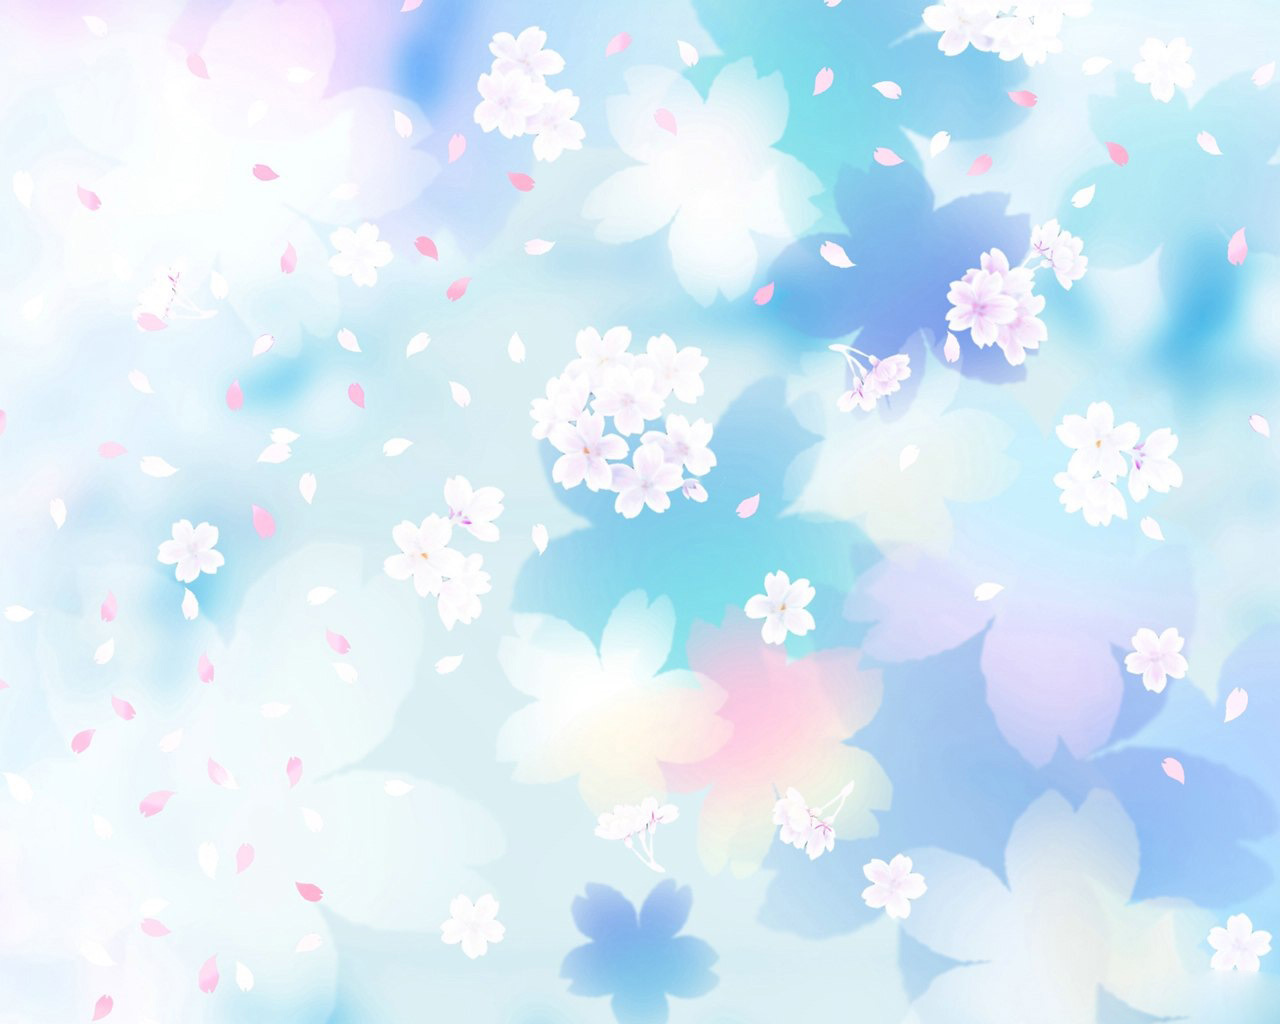 1280x1024px blue flower background - wallpapersafari